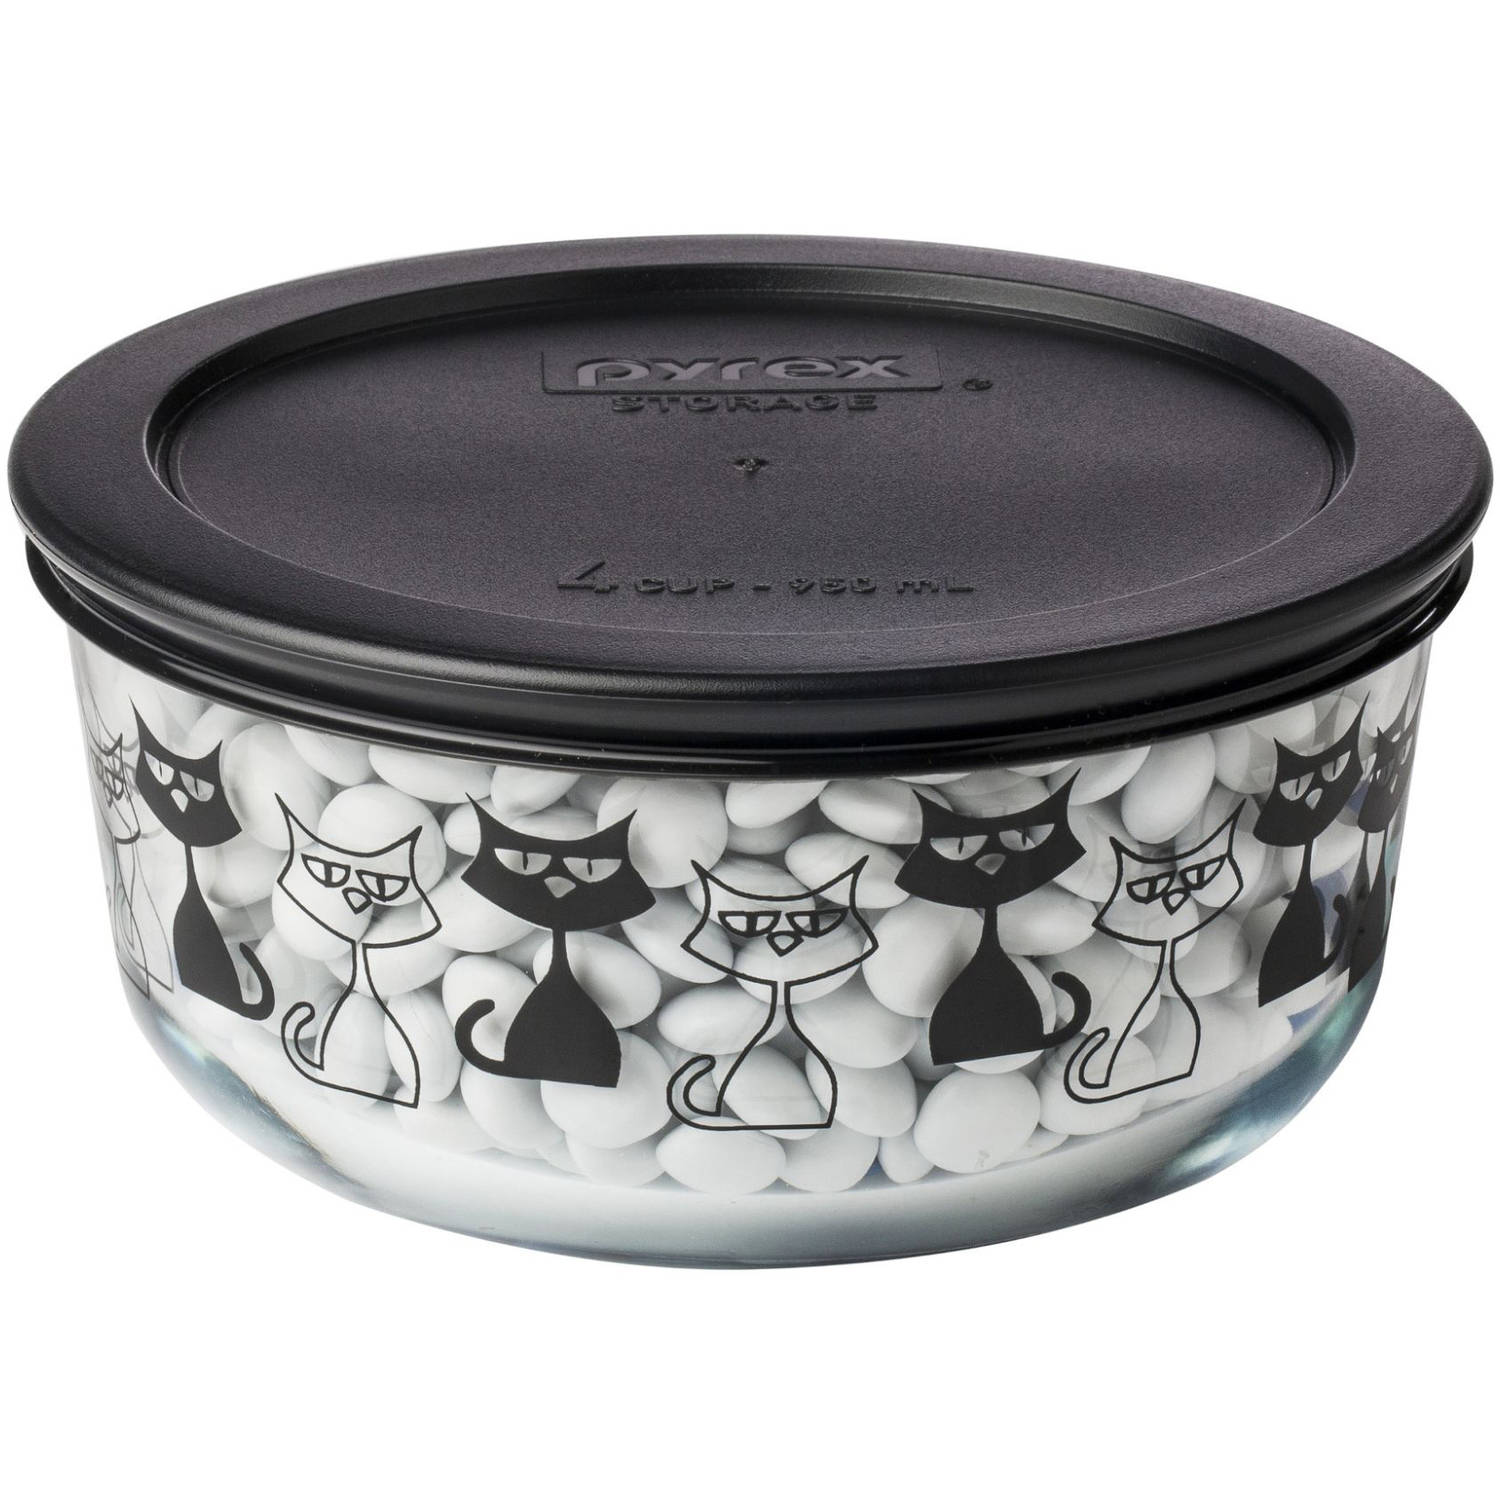 pyrex simply store halloween 4-cup round storage set with plastic